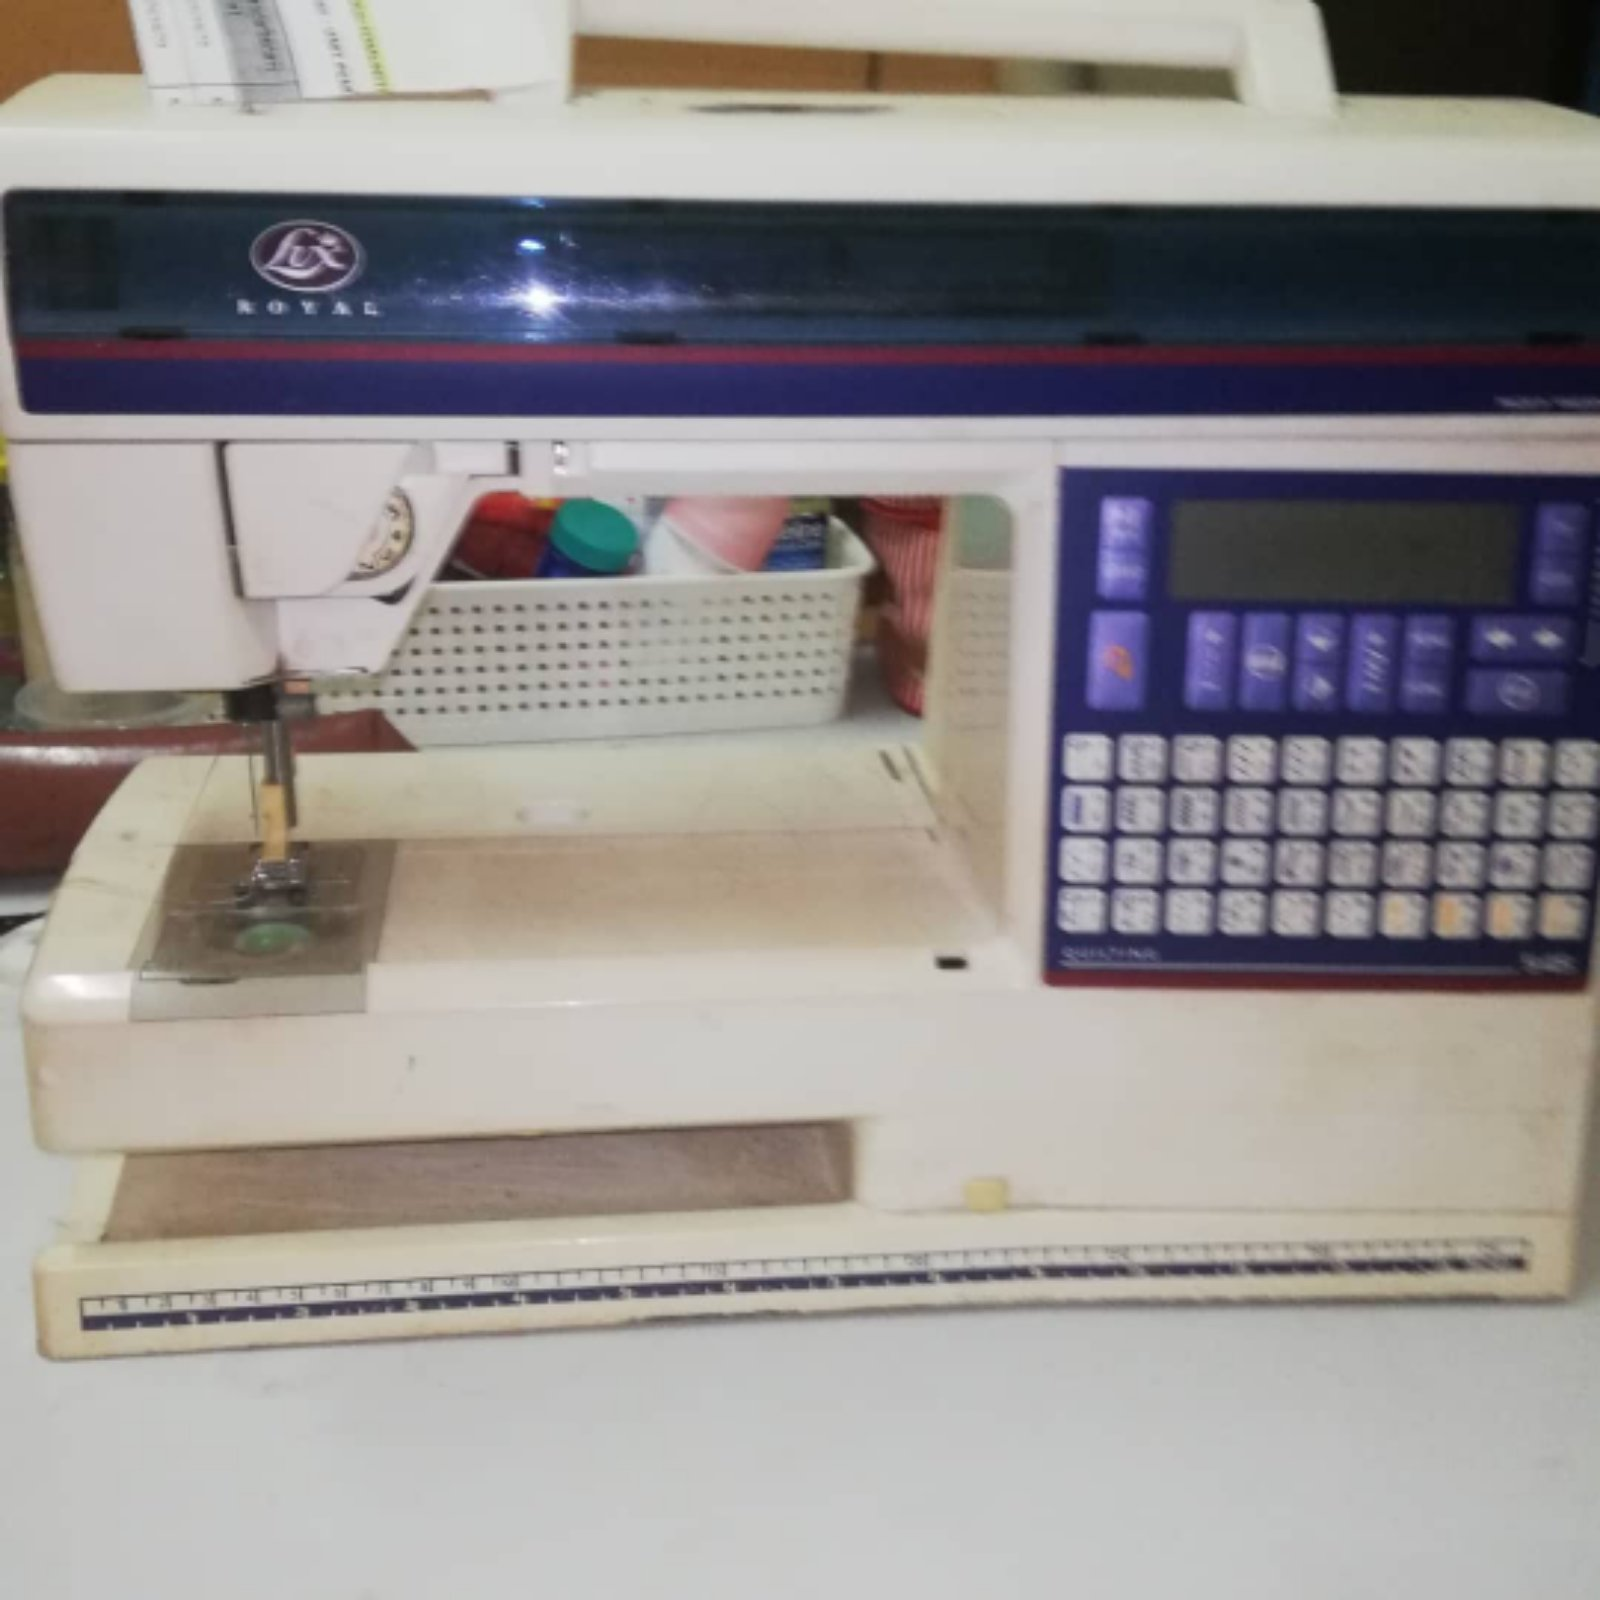 Repair Lux Portable Emboidery Sewing Machine